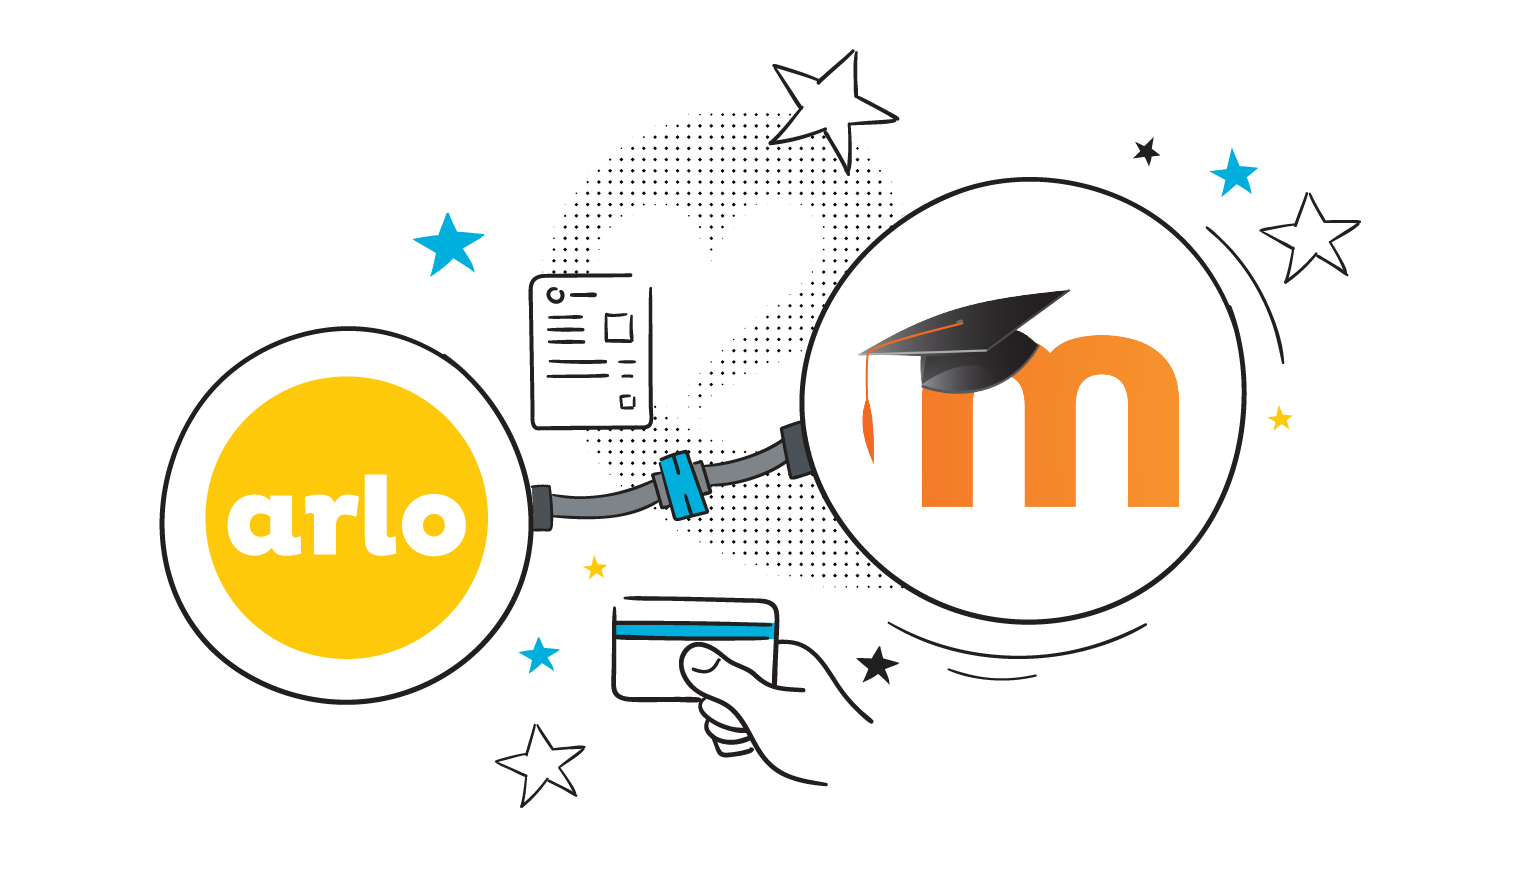 Arlo integrates with Moodle LMS